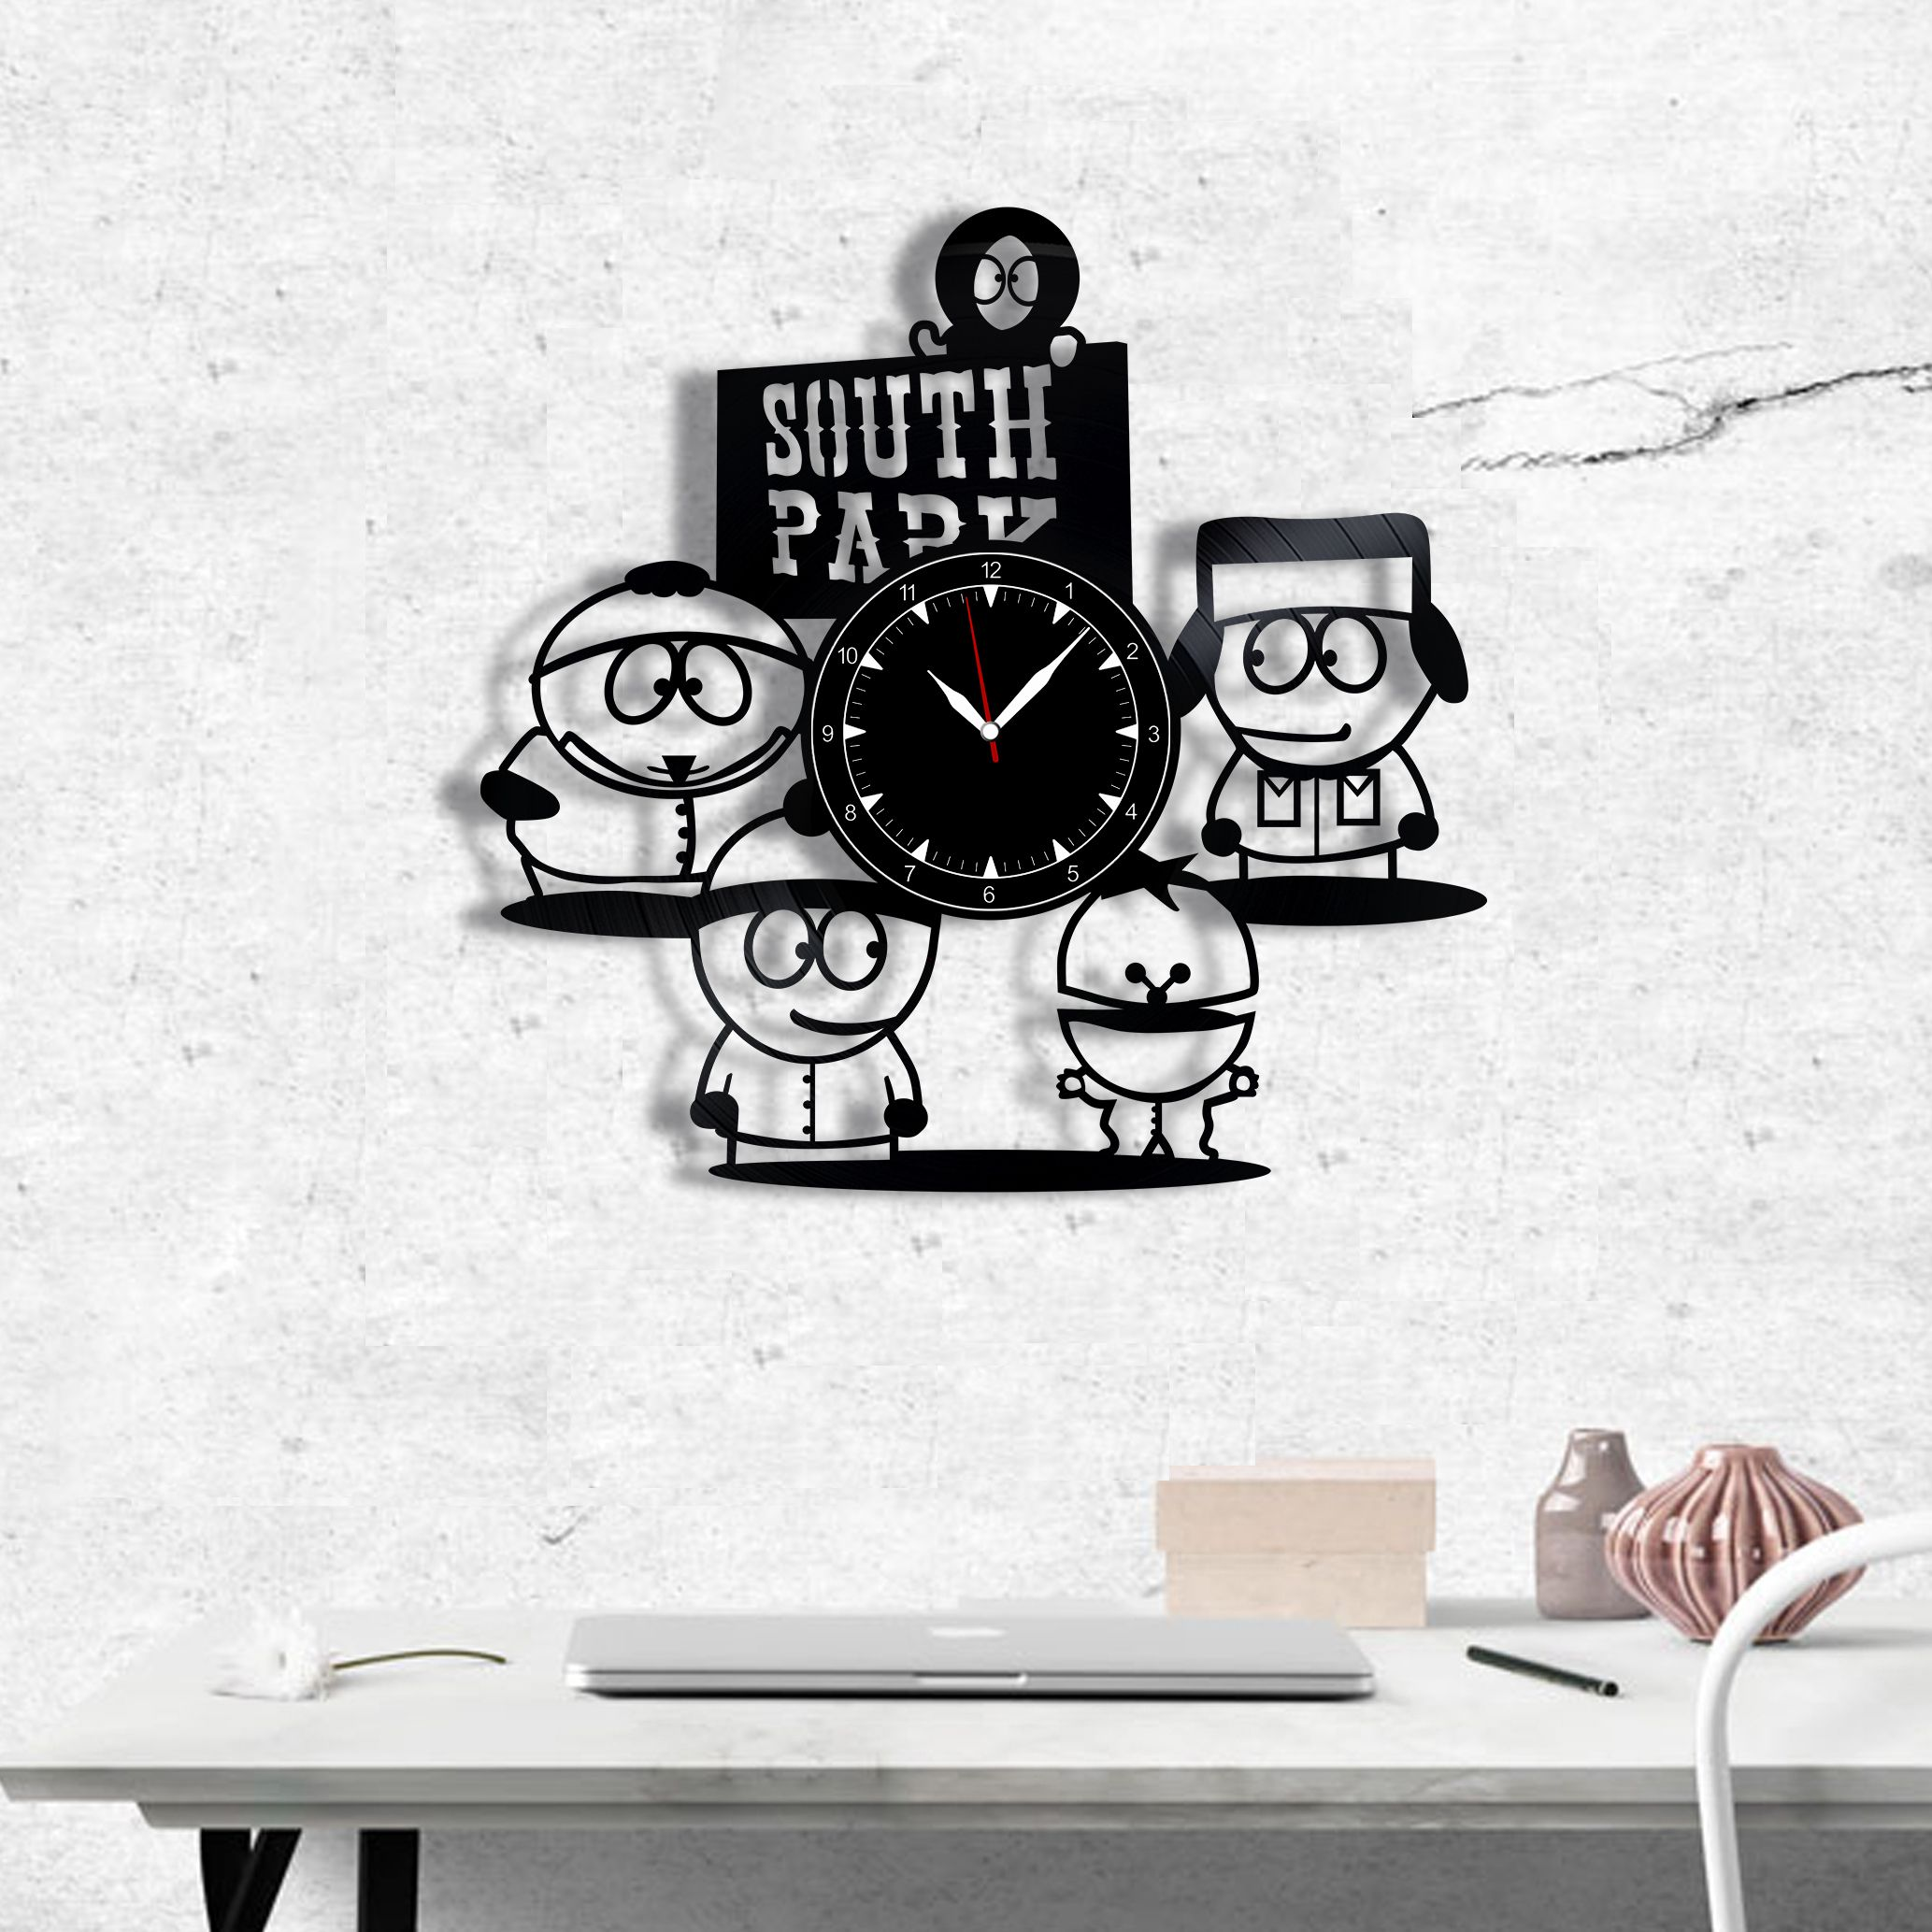 South Park Vinyl Record Clock South Park Wall Clock Best Gift For Fans South Park Original Wall Home Decor Decor Homedecor Wallart Walldecor Wall Chasy